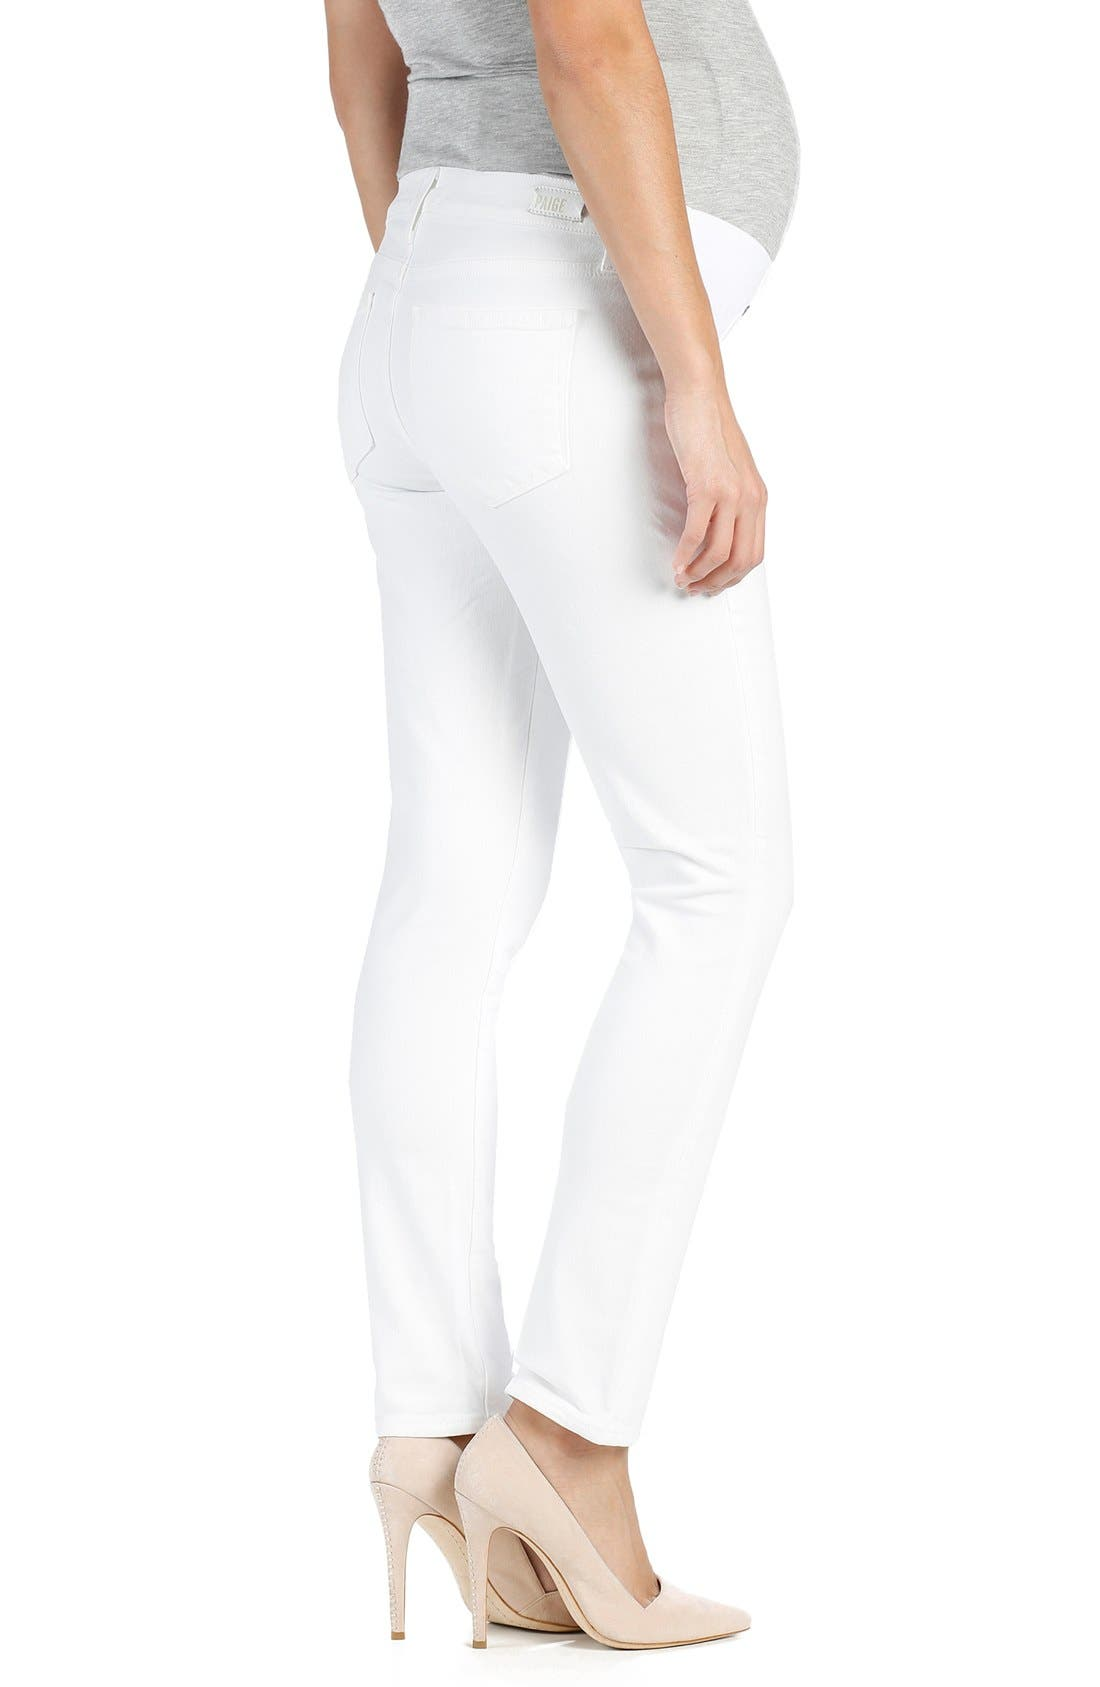 PAIGE,                             'Skyline' Ankle Peg Skinny Maternity Jeans,                             Alternate thumbnail 2, color,                             101